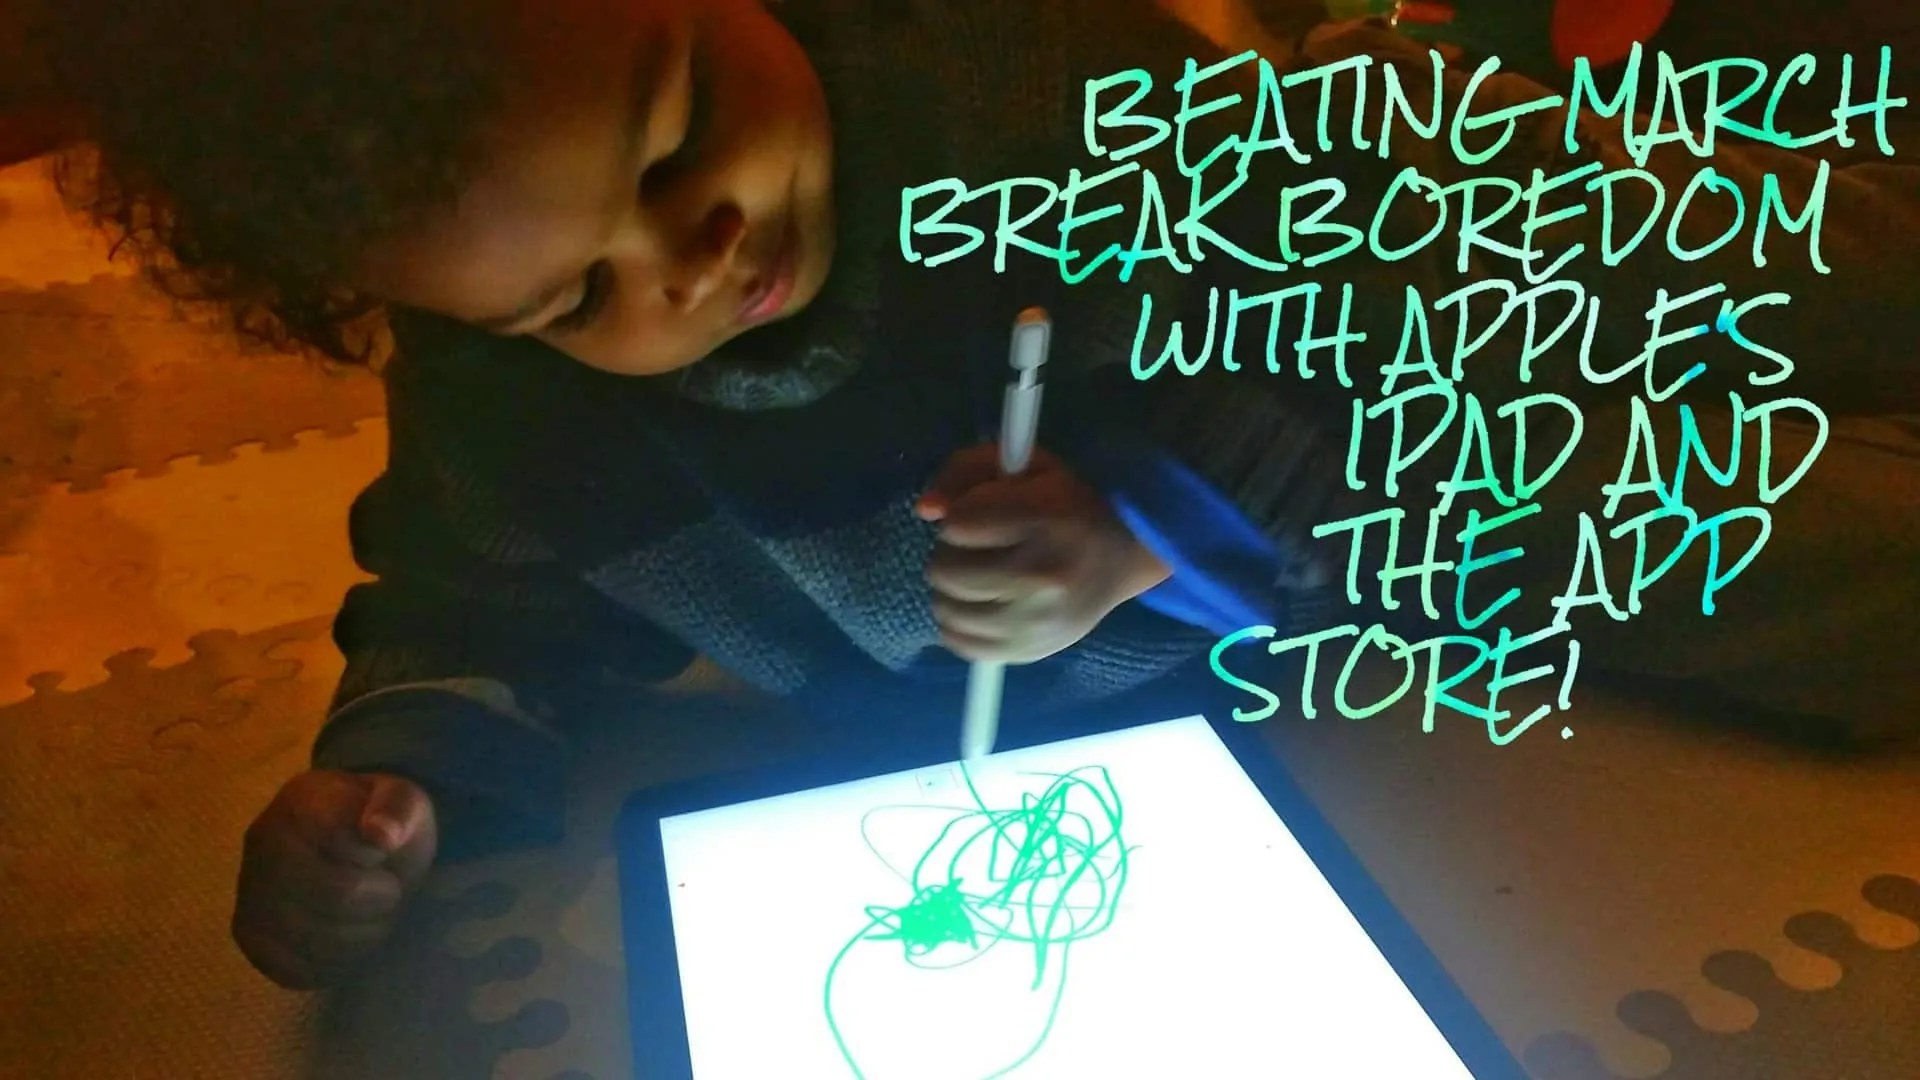 Beating March Break Boredom with Apple's iPad and the App Store! (Featured Image)